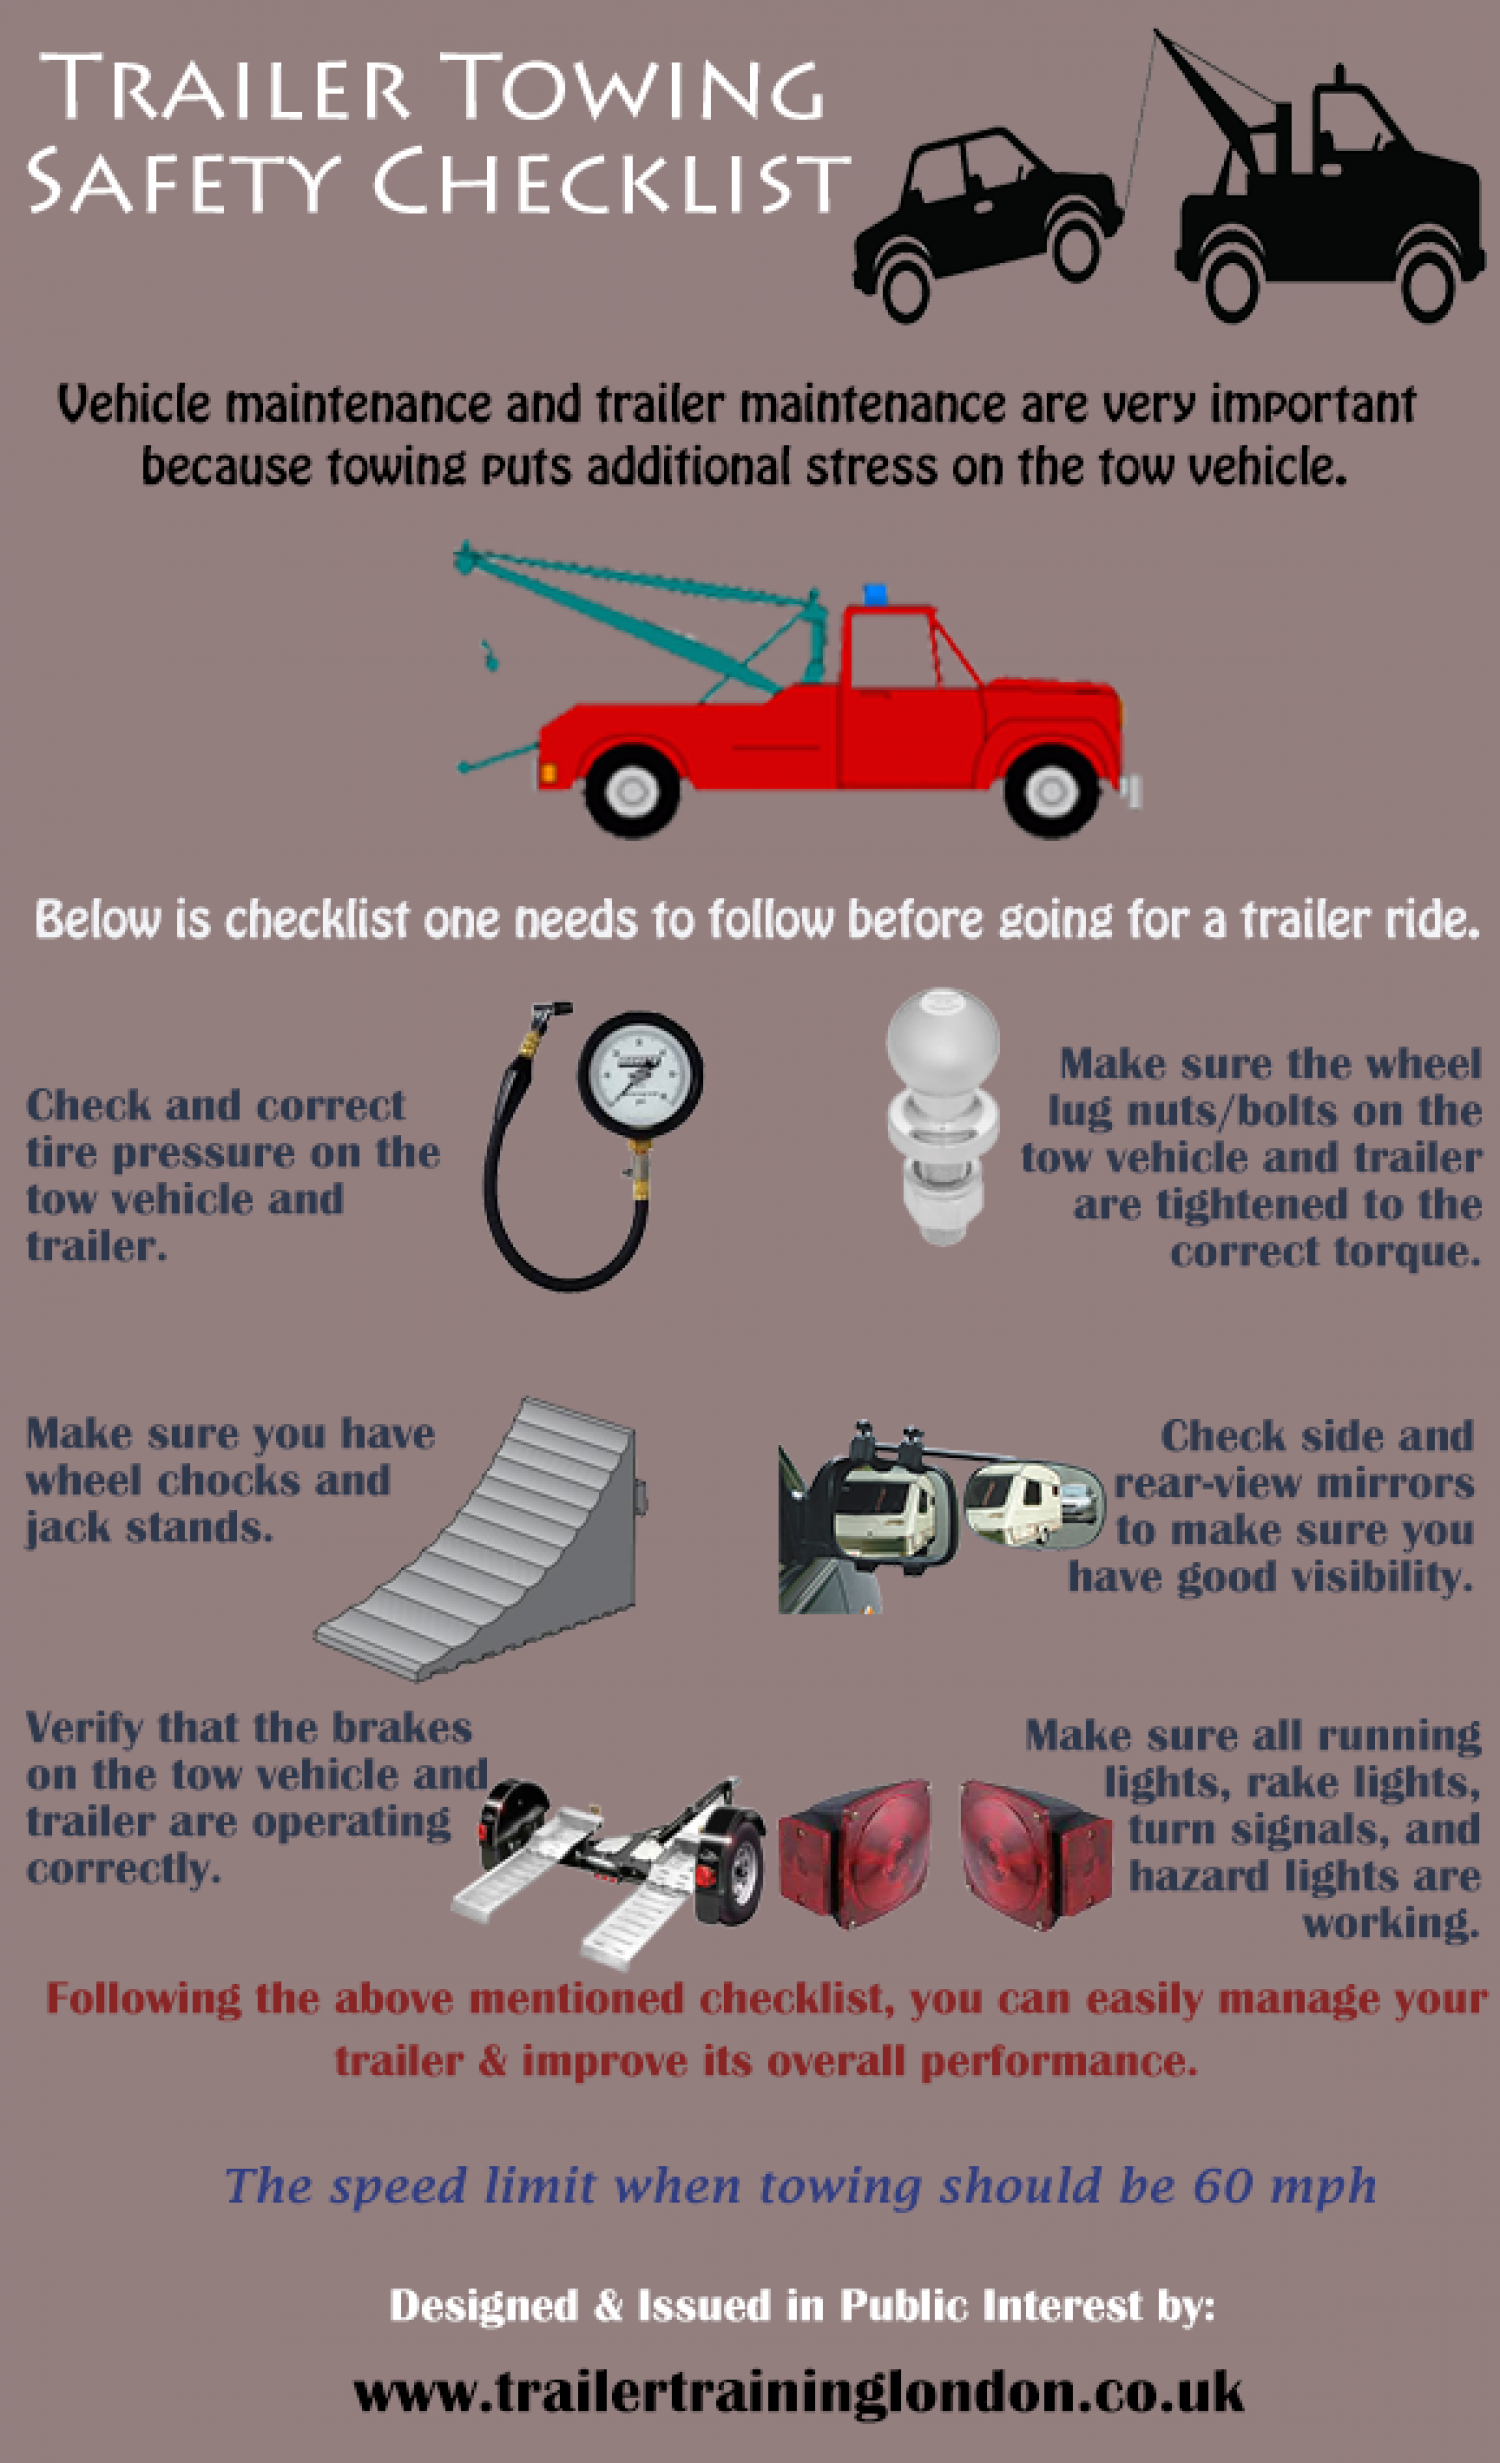 B And B Towing >> Trailer Towing Safety Checklist | Visual.ly